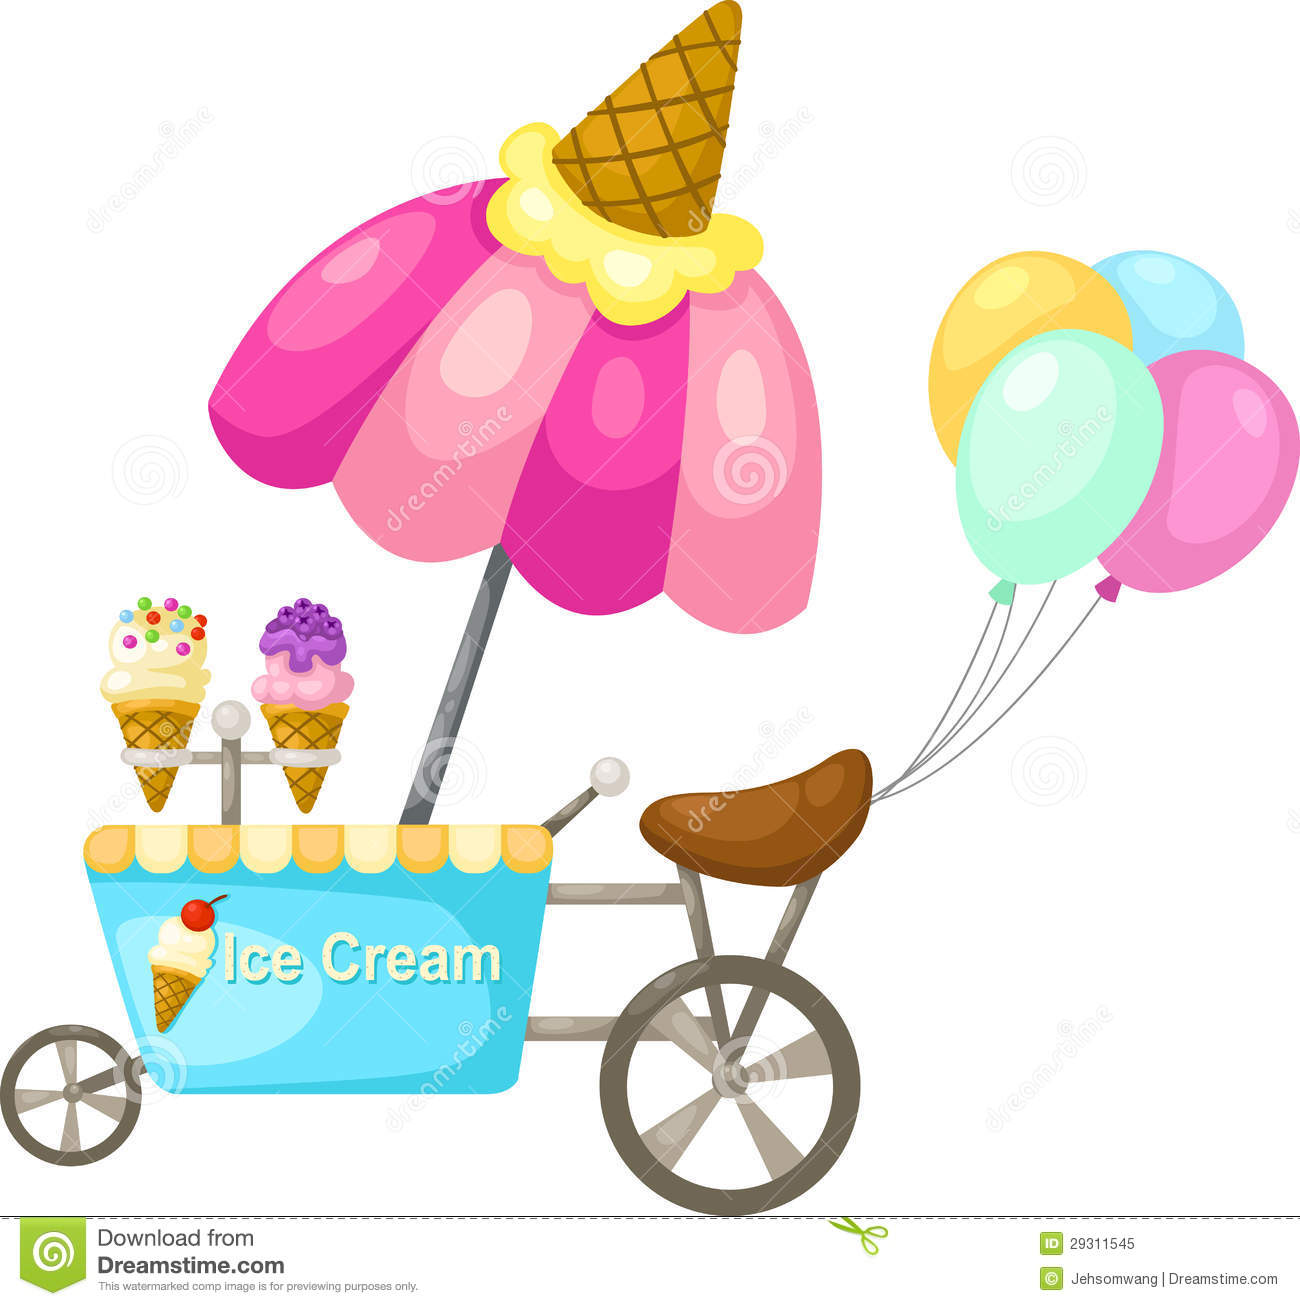 Download Cartoon Ice Cream Wallpaper Gallery: Cart Stall And A Ice Cream Stock Vector. Illustration Of